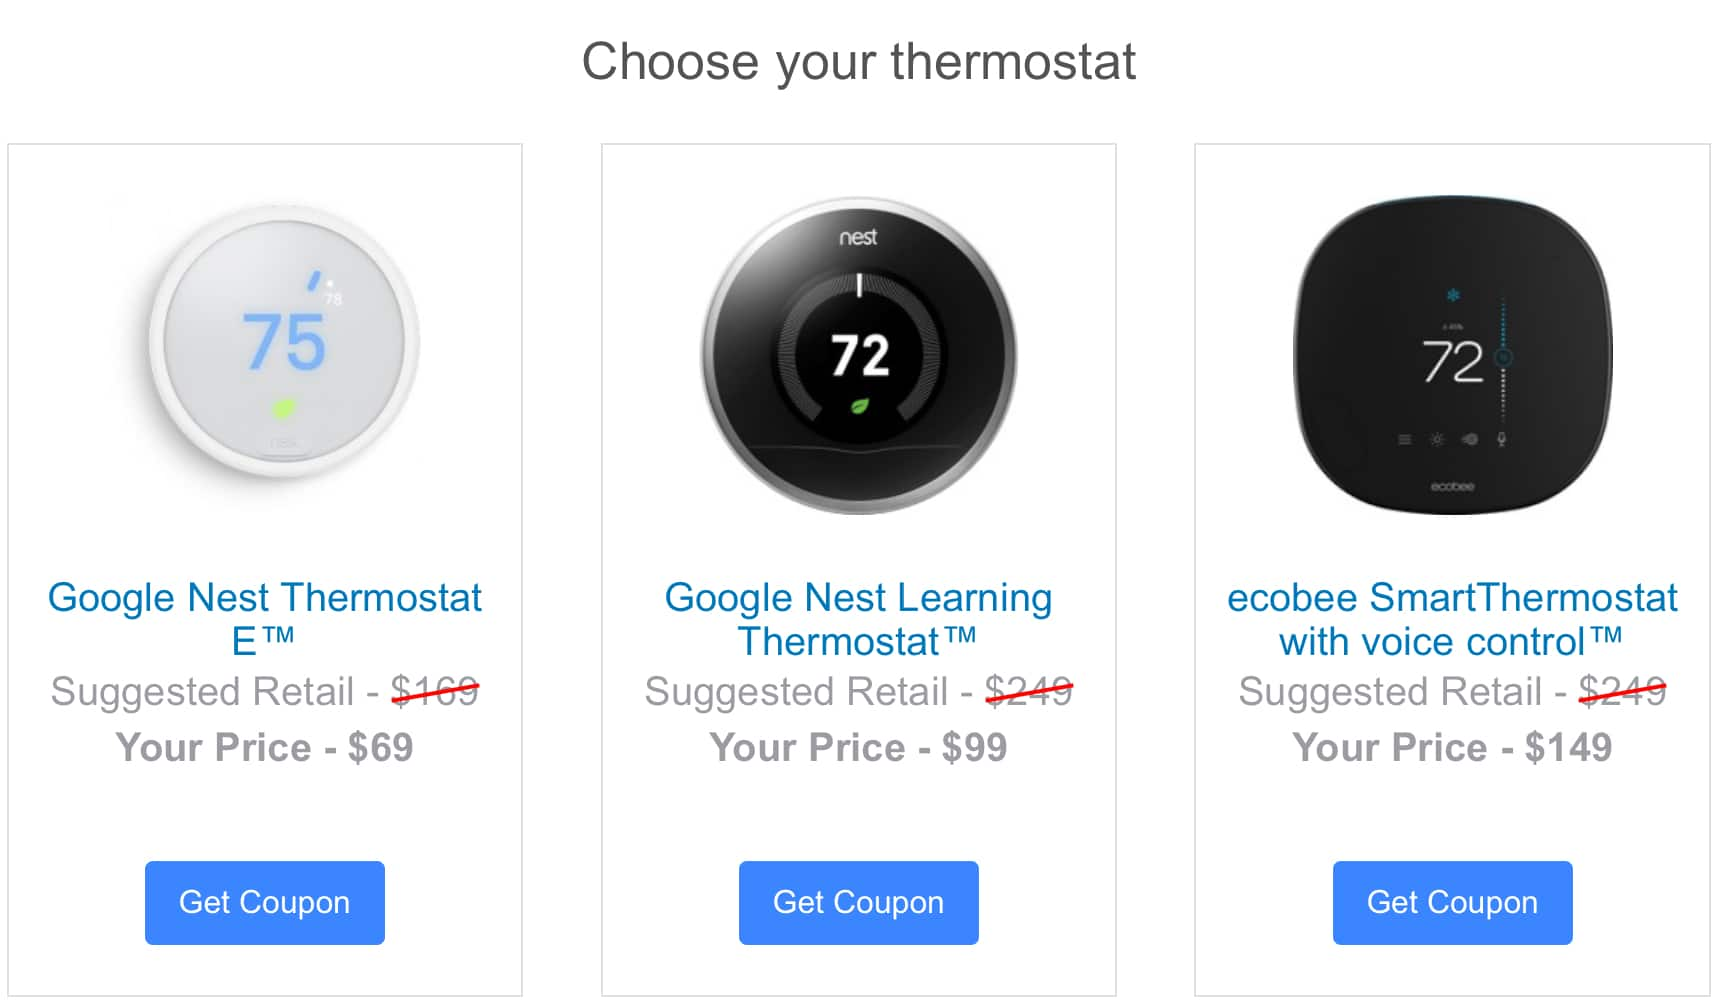 Portland General Electric (Oregon) customers only - Google Nest Learning Thermostat - $99